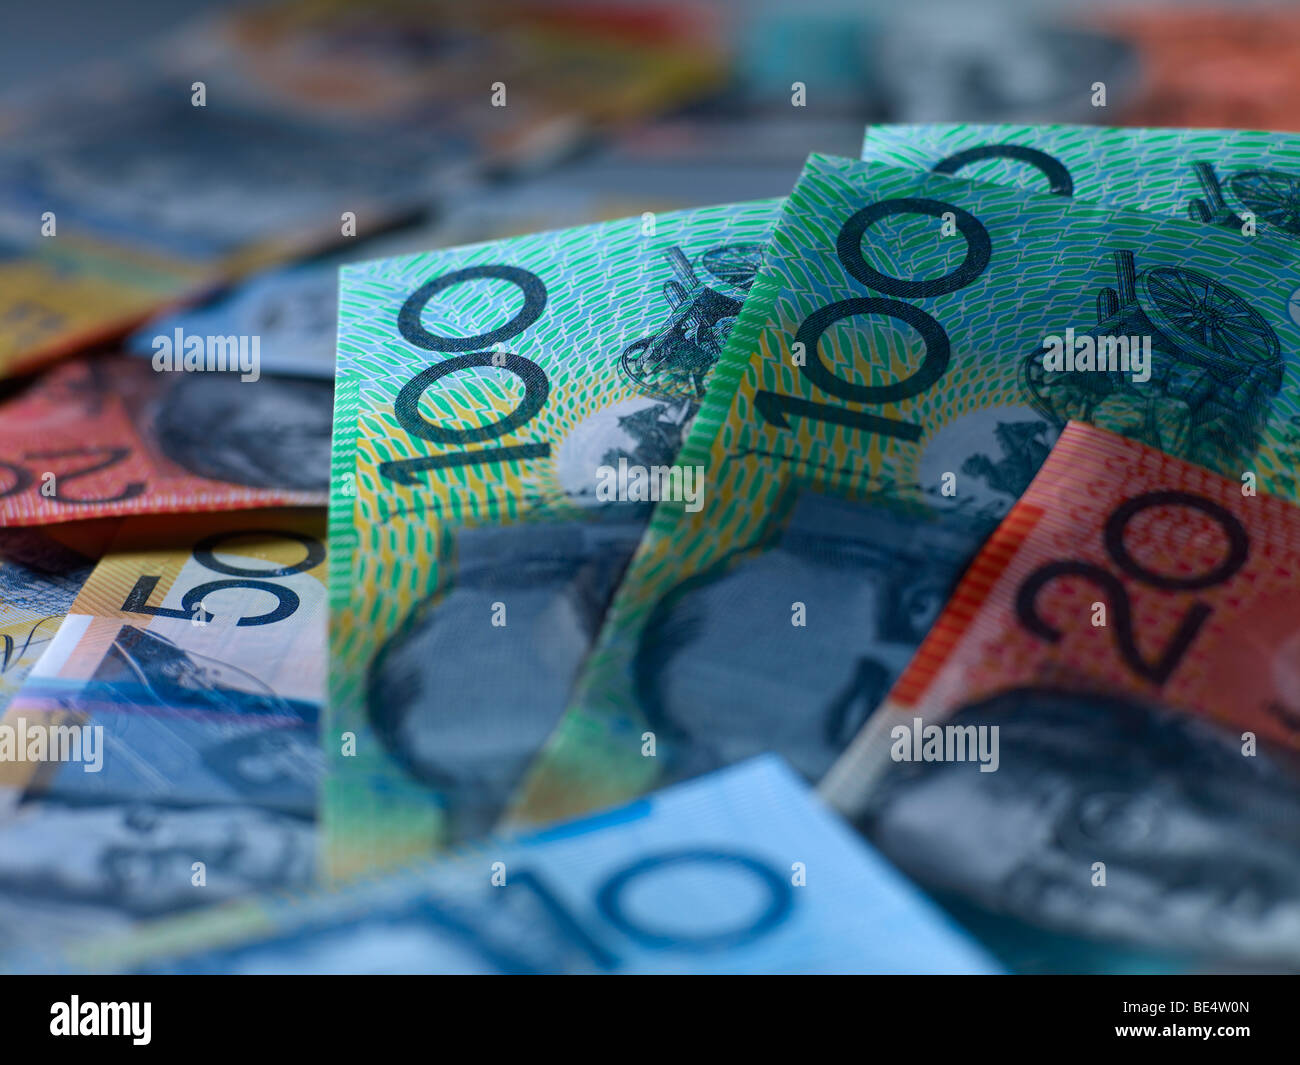 Australian currency - Stock Image